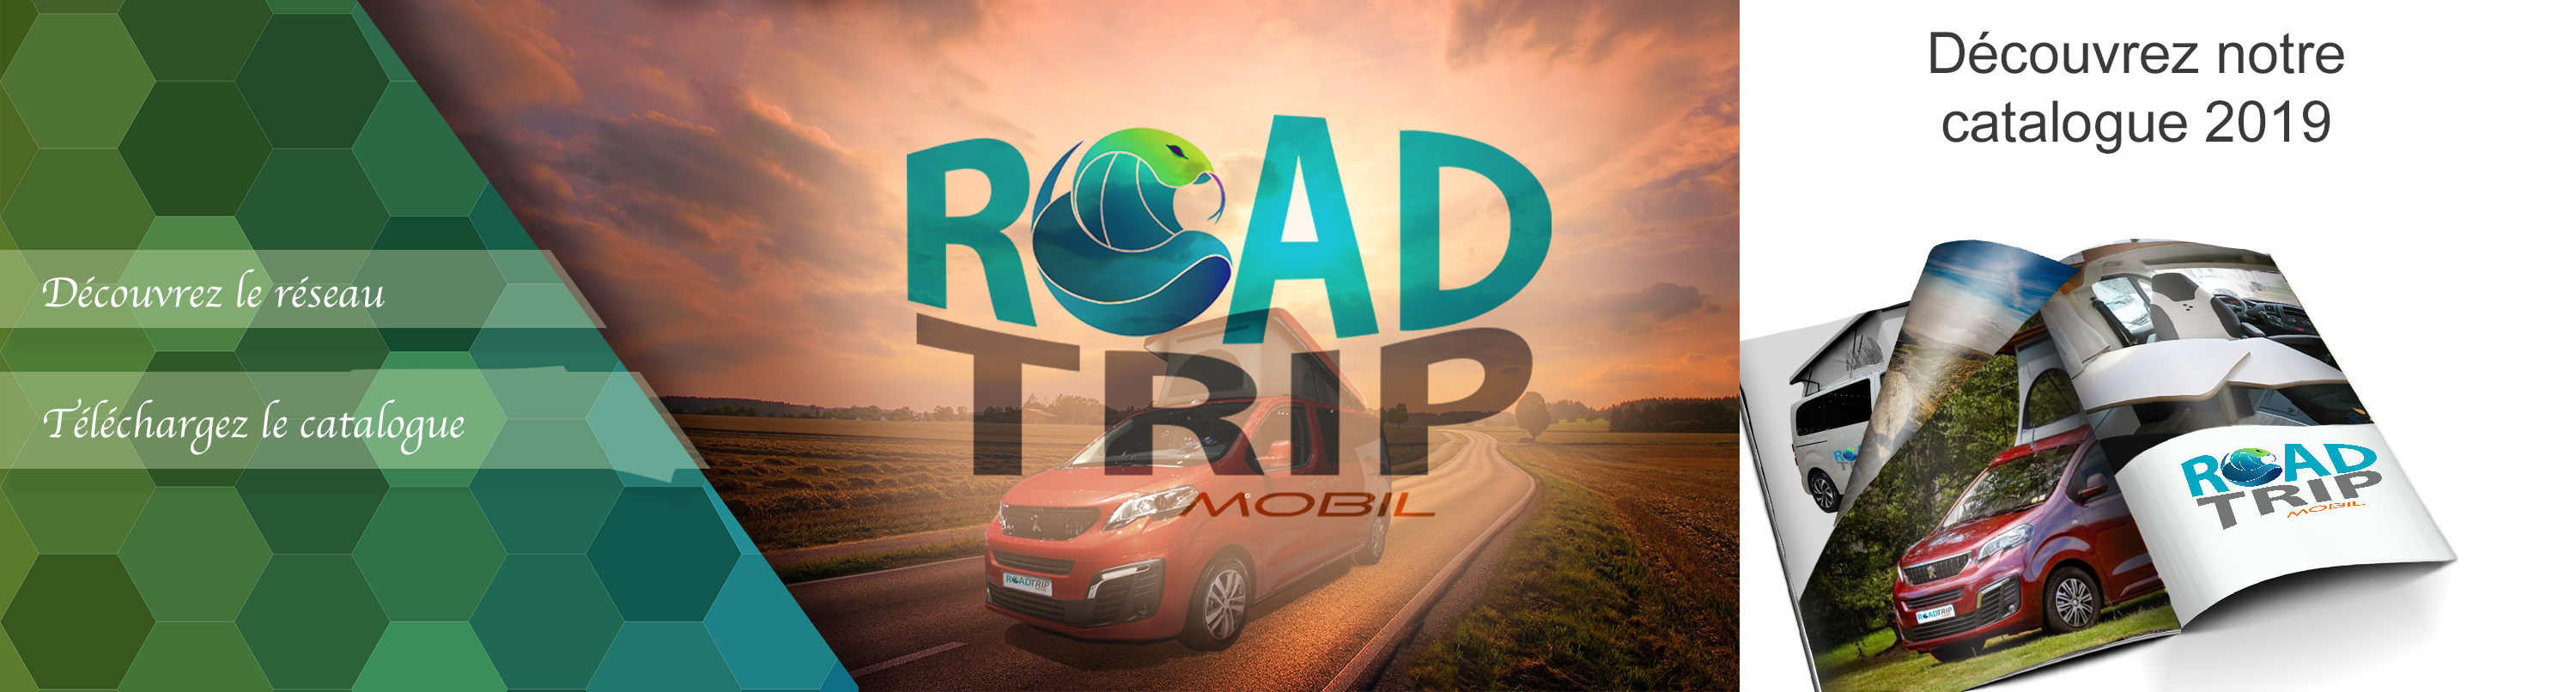 catalogue road trip mobil 2019